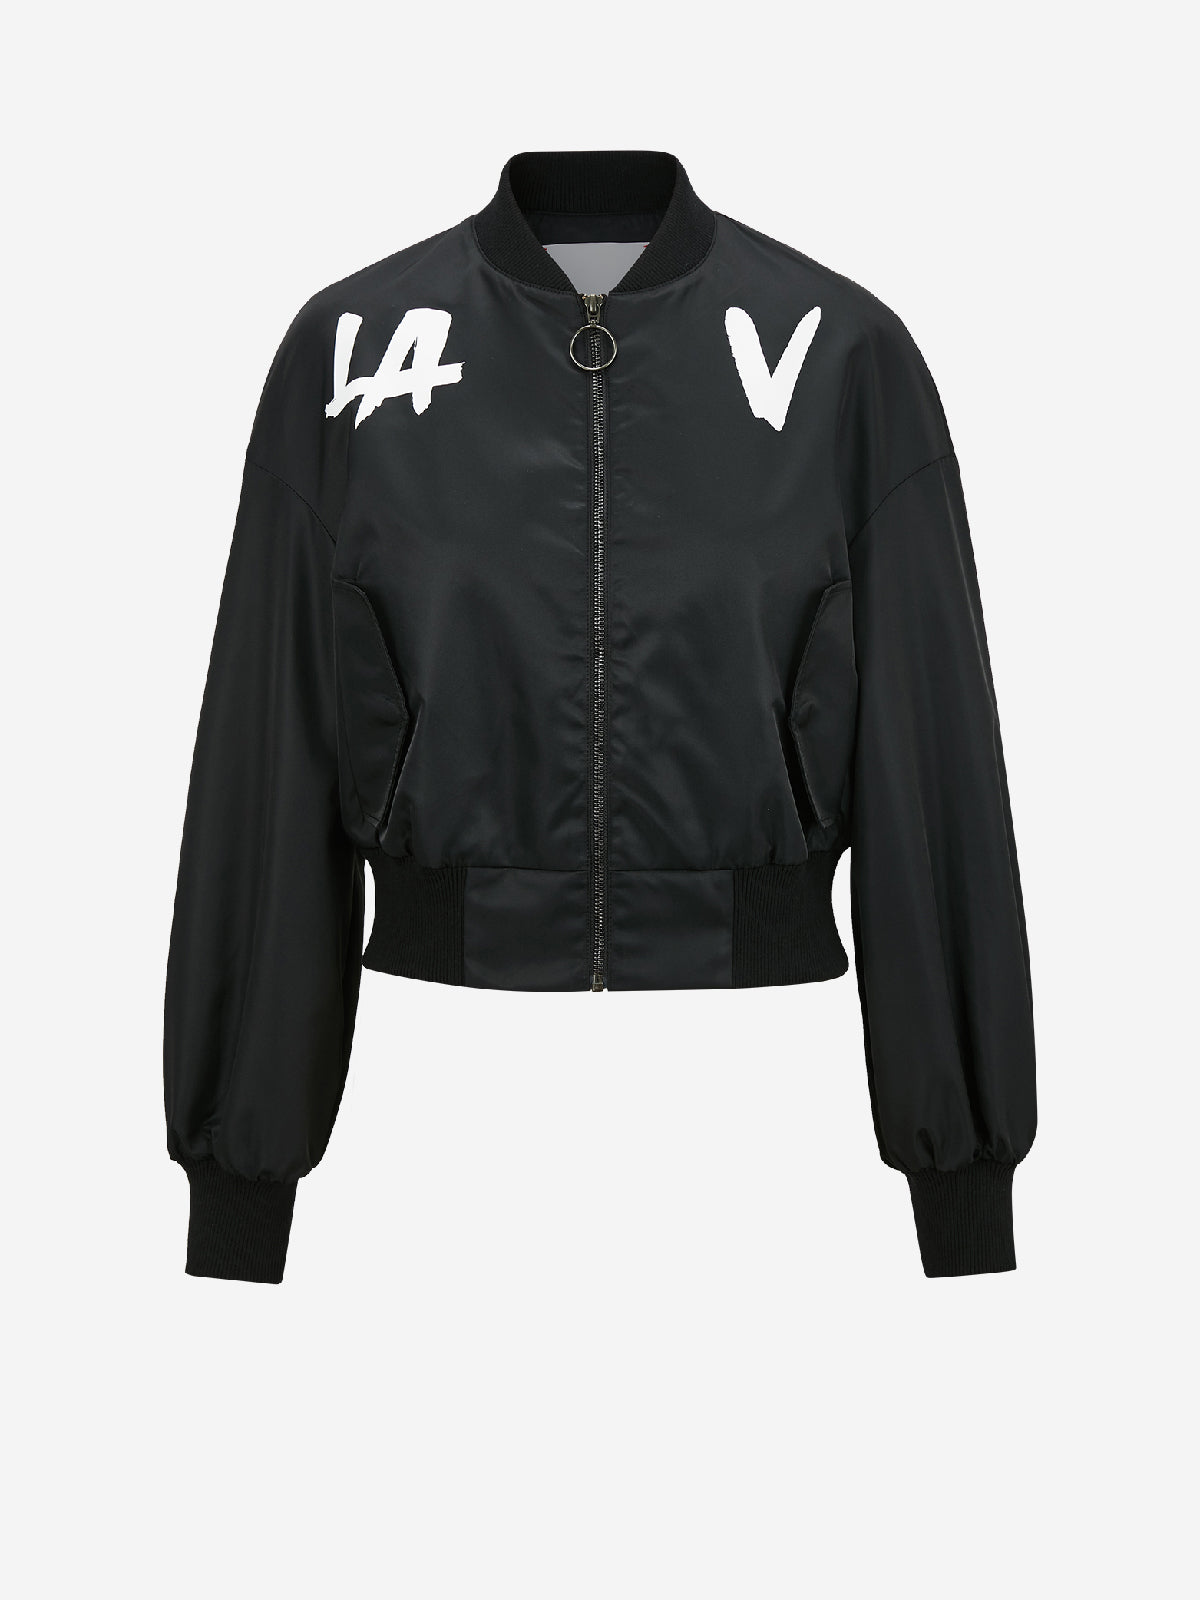 La V Zip Up Bomber Style Jacket